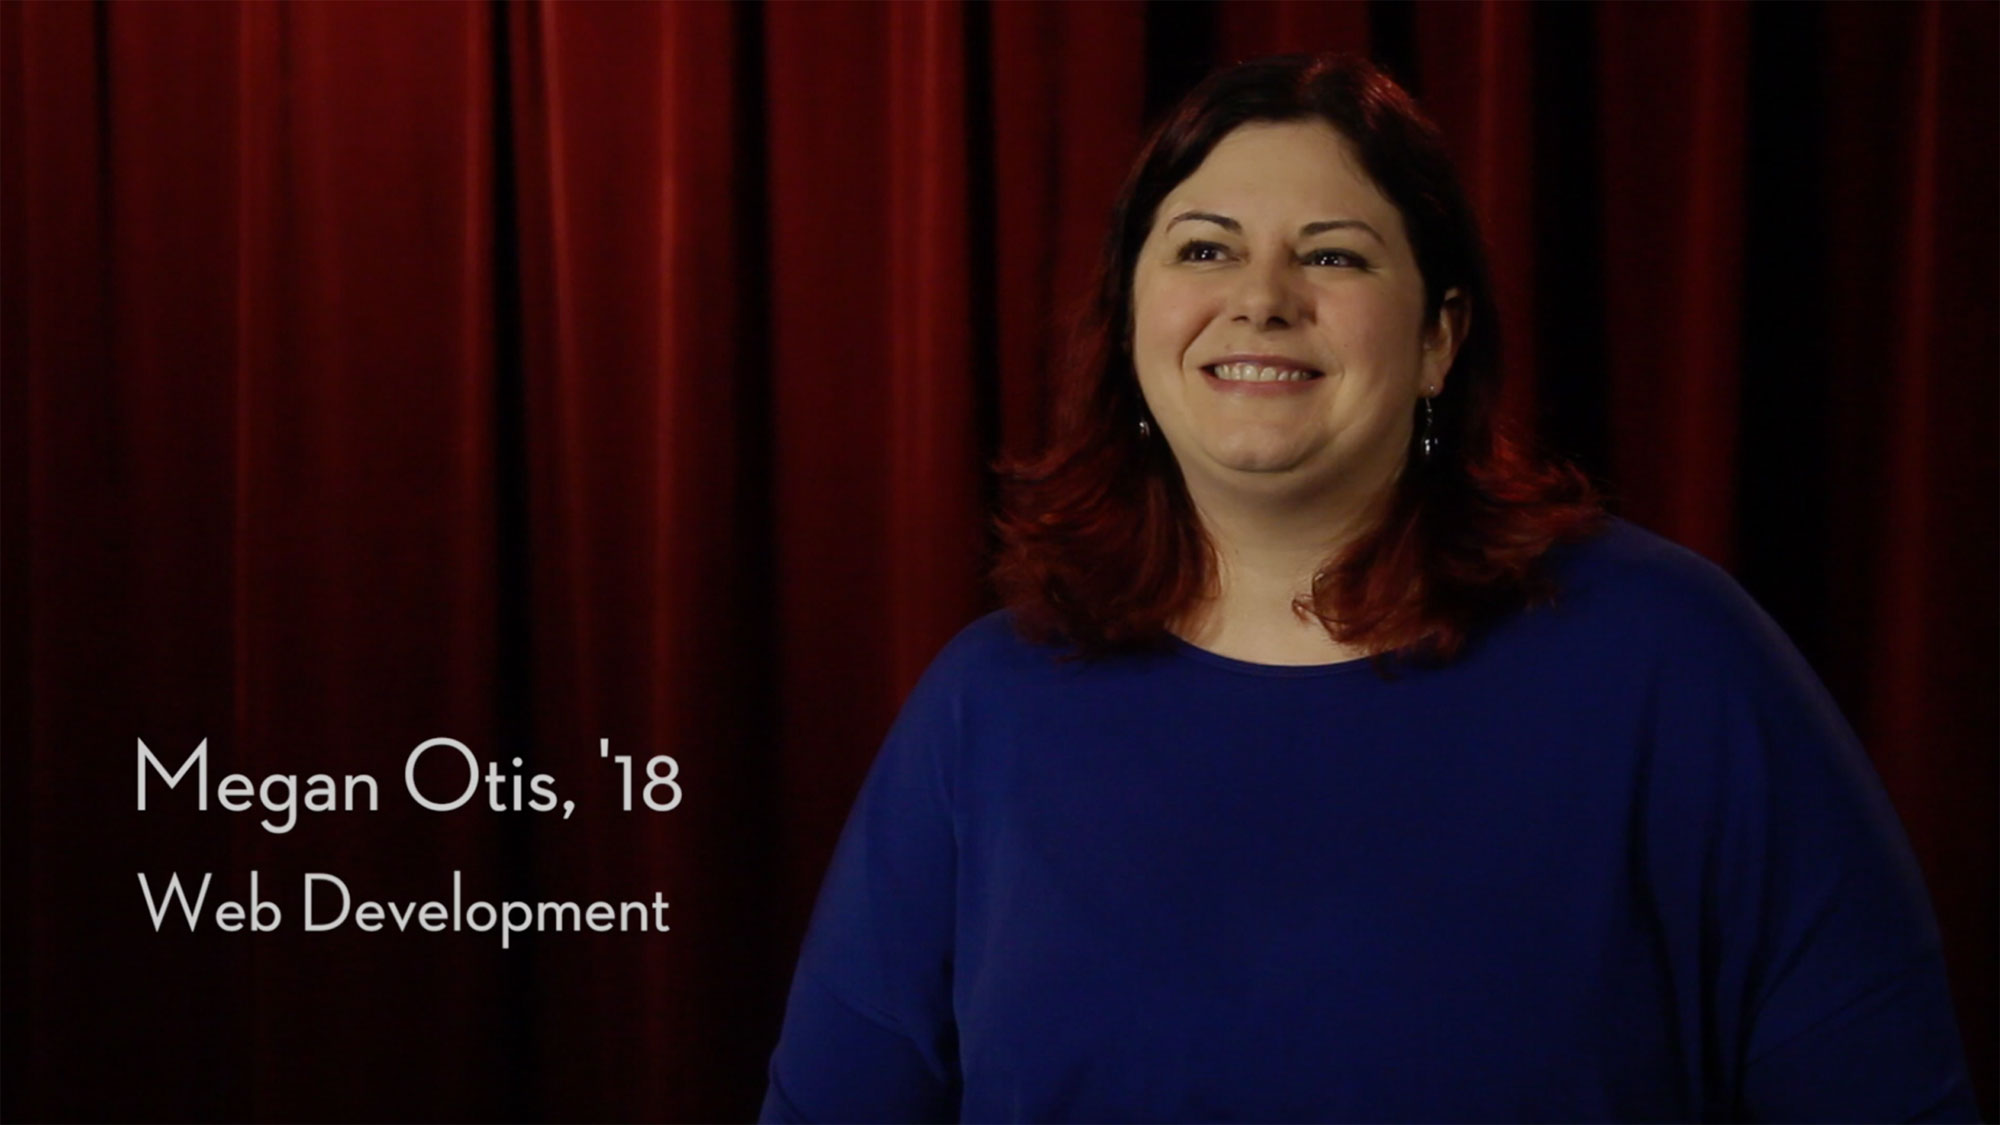 Megan Otis, '18 Web Development